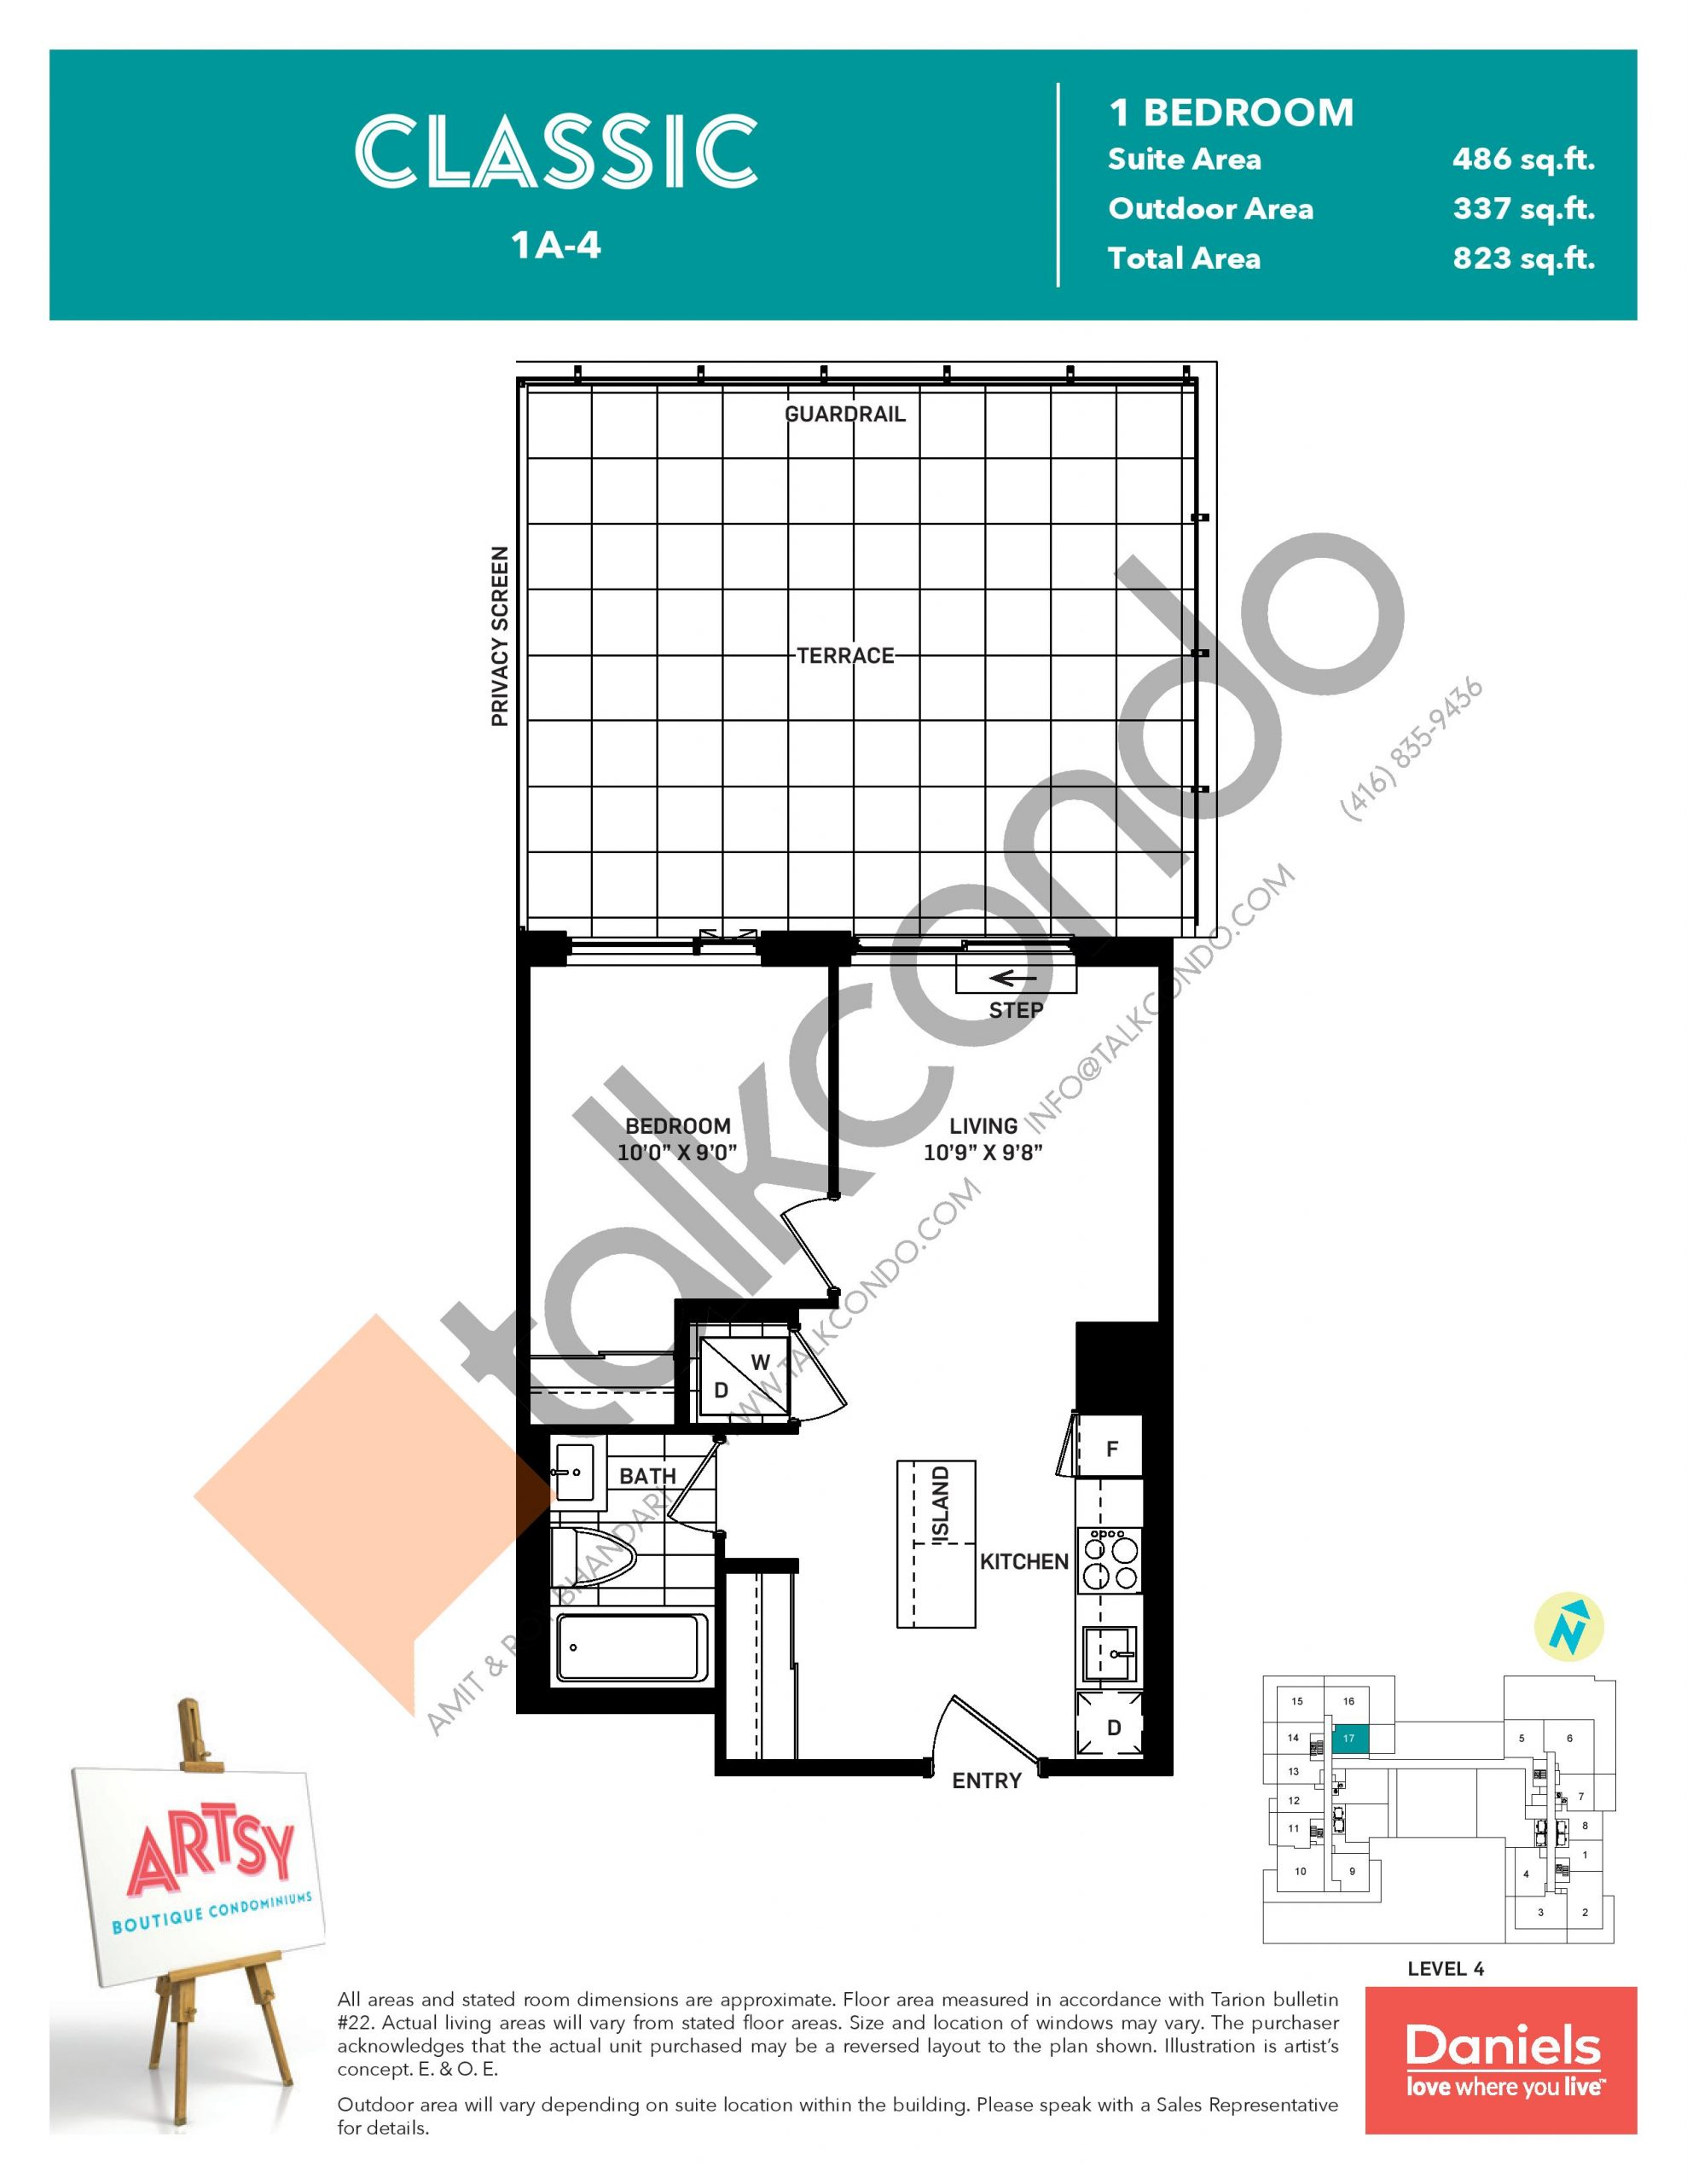 Classic Floor Plan at Artsy Boutique Condos - 486 sq.ft